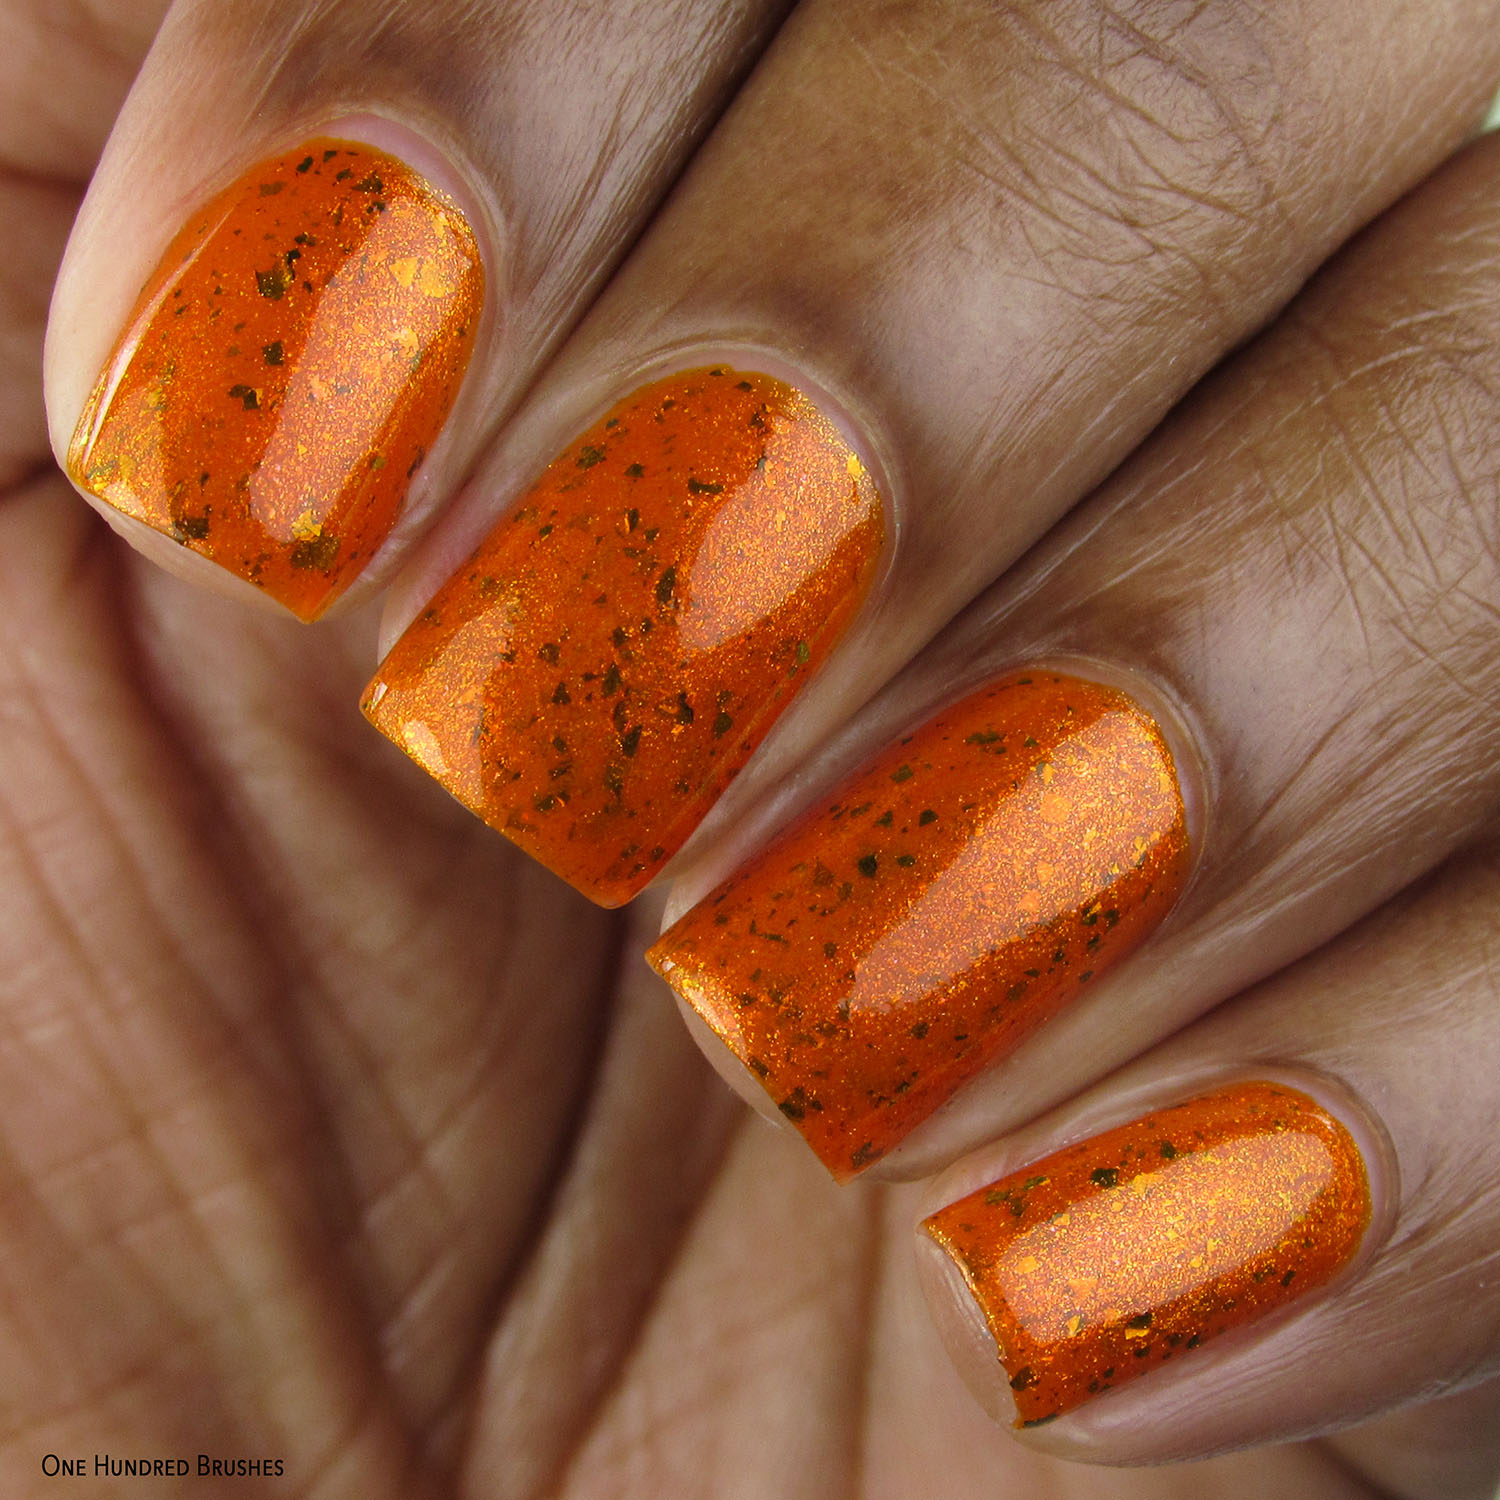 I Have Been Baptized Twice, Once In Water, Once In Flame - Geekish Glitter Lacquer - Fallout Polished Gamers February 2020